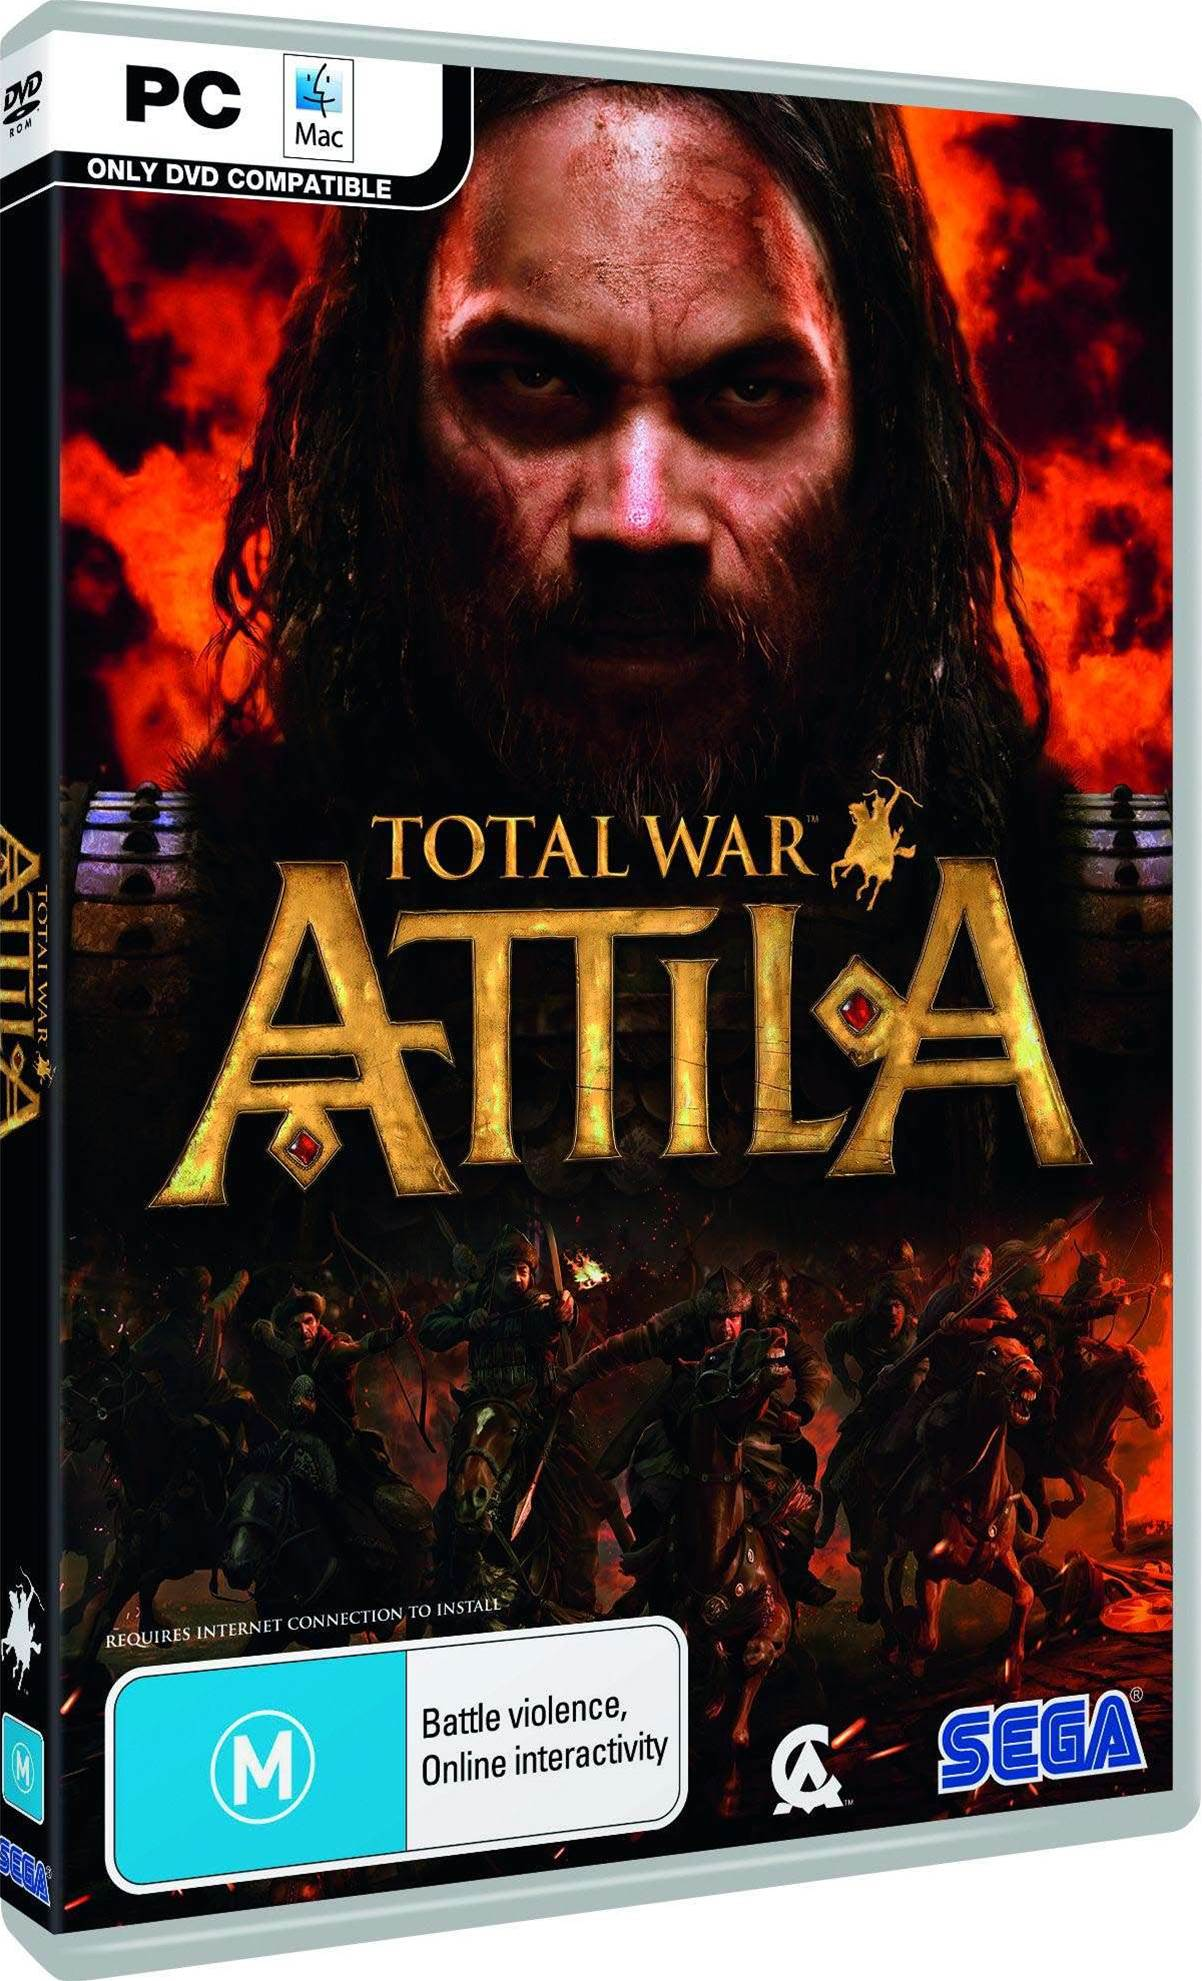 WIN! Total War: Attila